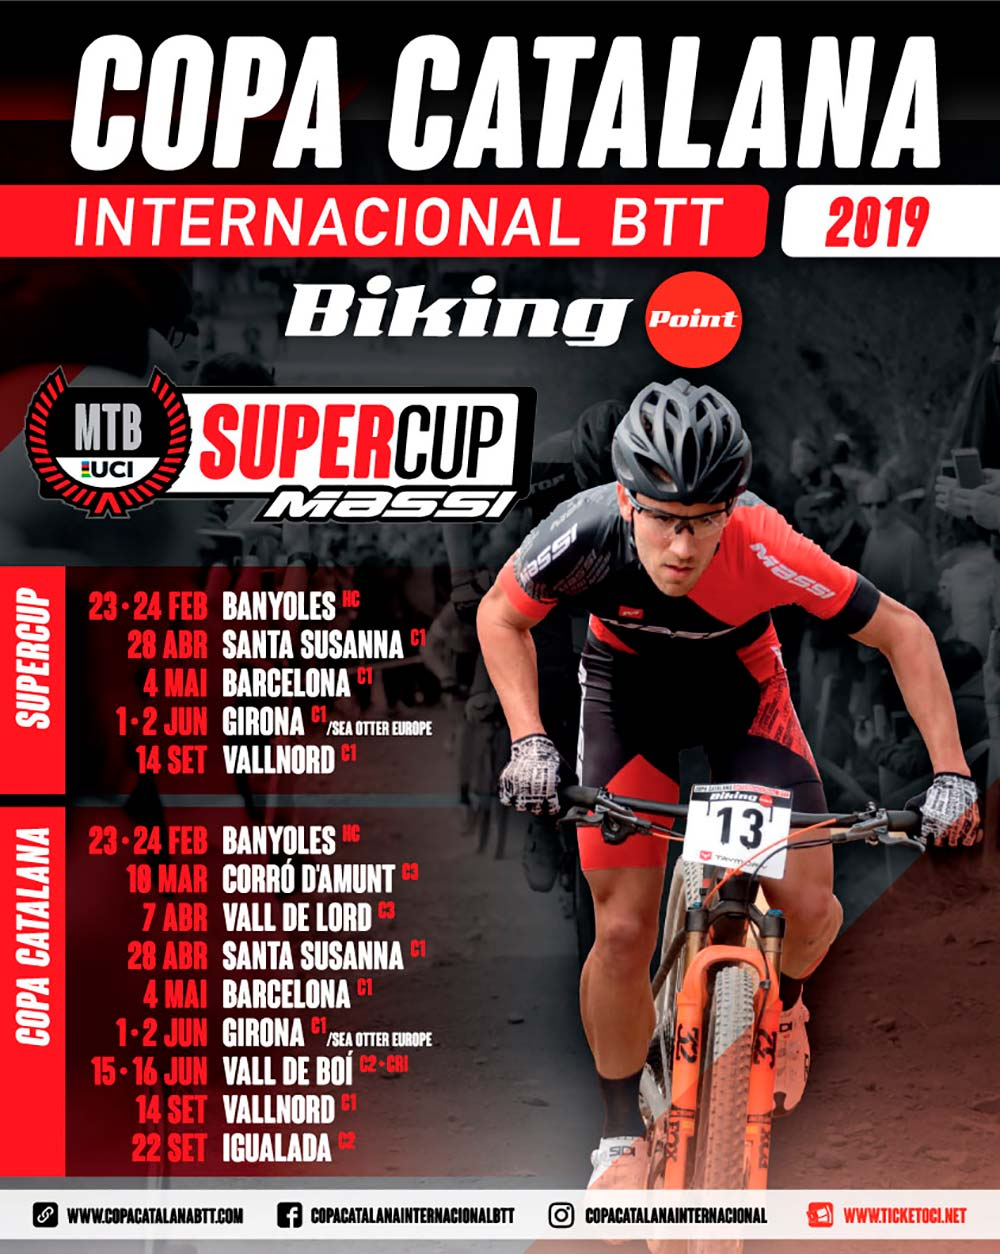 La Copa Catalana Internacional BTT Biking Point desvela su calendario de 2019